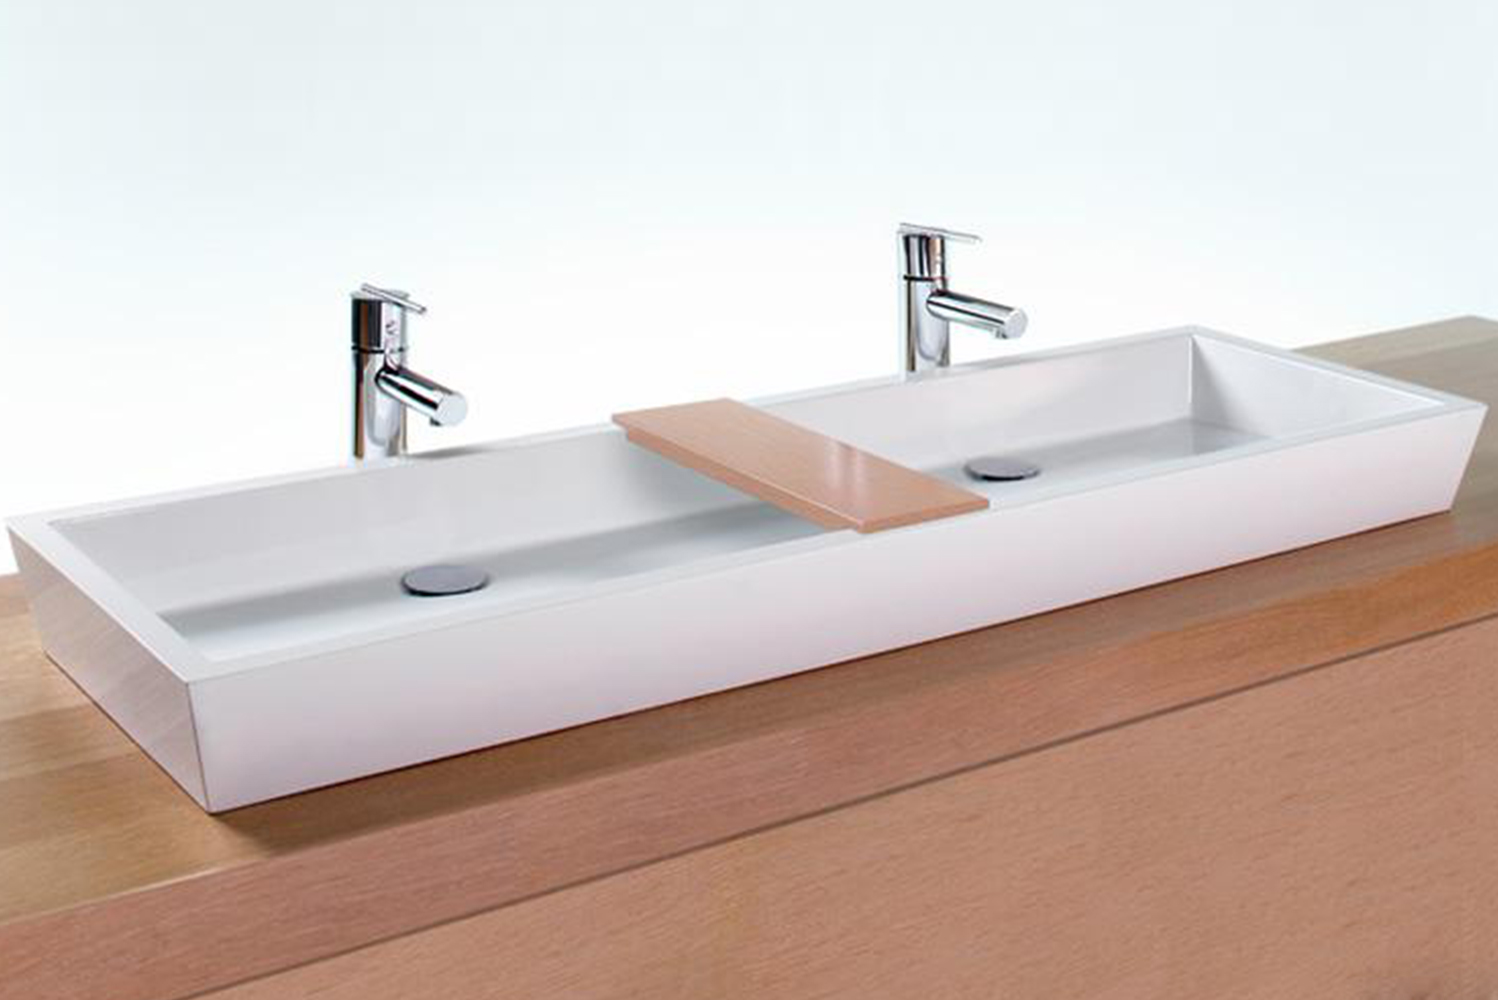 Introducing WETSTYLE's Cube sinks.